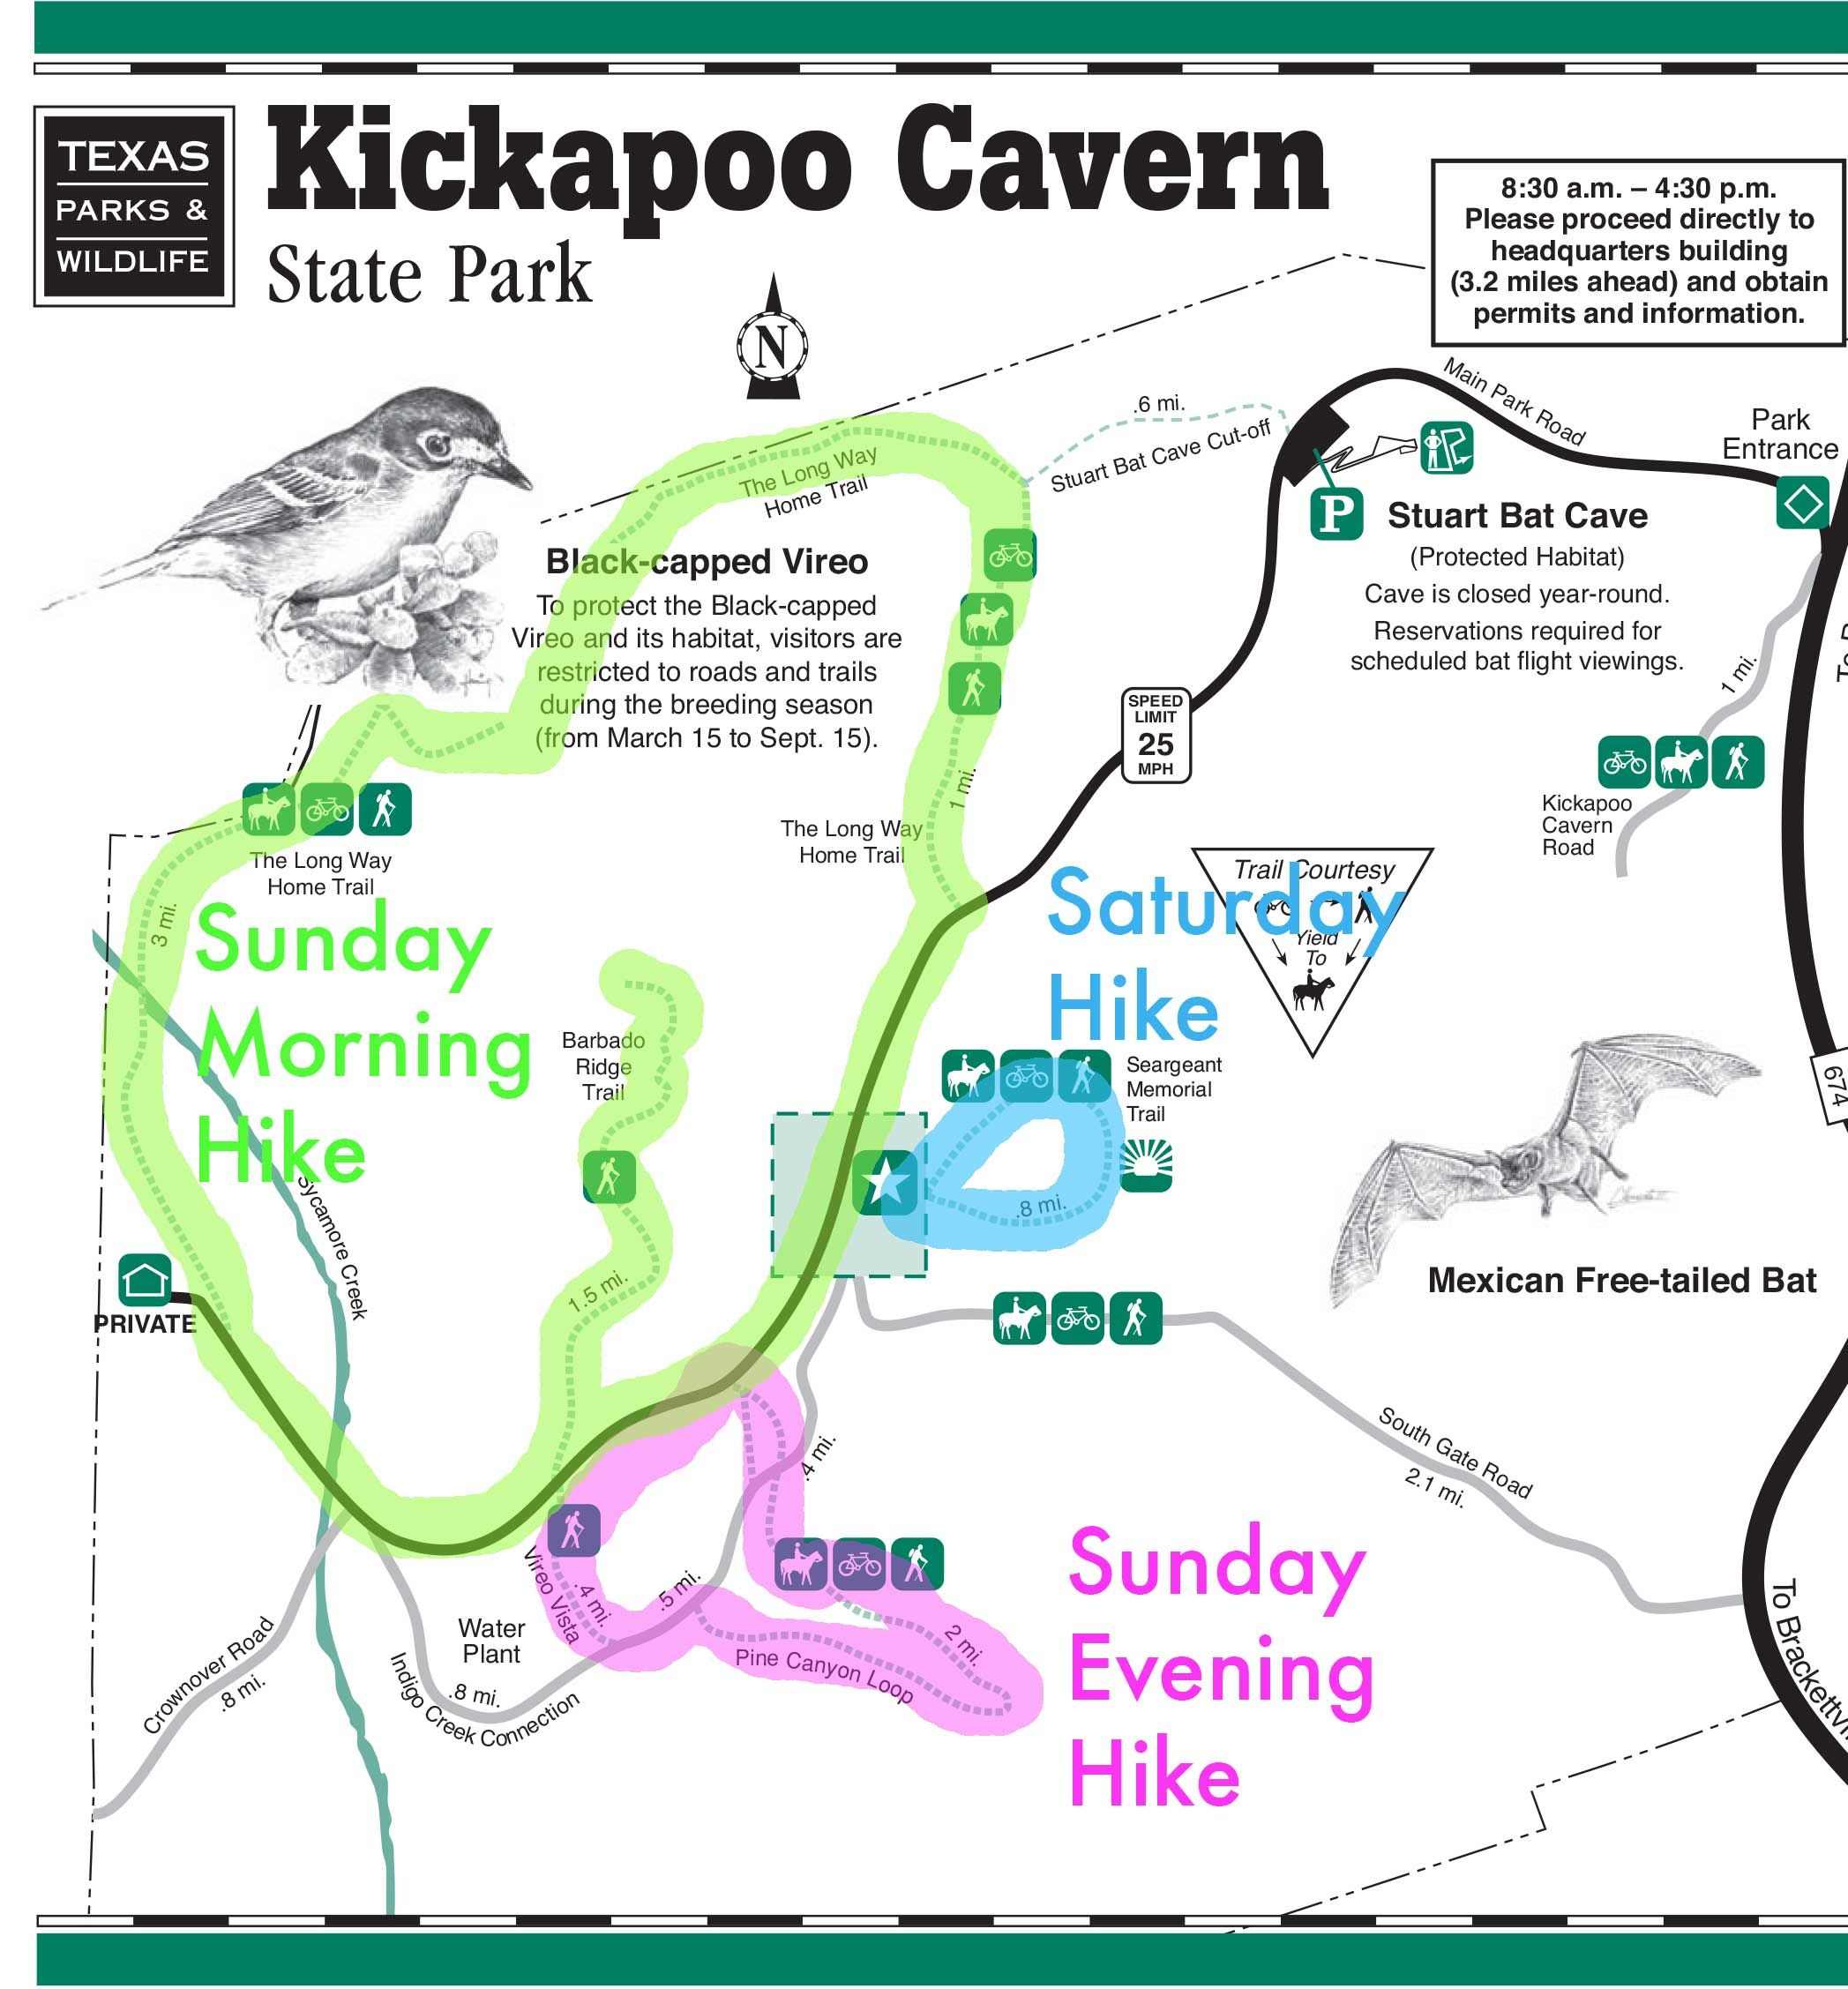 Kickapoo Cavern State Park | Hike. Camp ... | Texas state parks in on seneca state park trail map, kickapoo park danville il map, new mexico carlsbad caverns national park map, giant city state park trail map, lincoln park trail map, starved rock state park trail map, randolph state park trail map, caledonia state park trail map, susquehannock state park trail map, ferne clyffe state park trail map, fox ridge state park trail map, belmont state park trail map, shawnee state park trail map, mississippi palisades state park trail map, kankakee river state park trail map, massasoit state park trail map, kickapoo bike trail map trail map, pyramid state park trail map, ponca state park trail map, apple river canyon state park trail map,